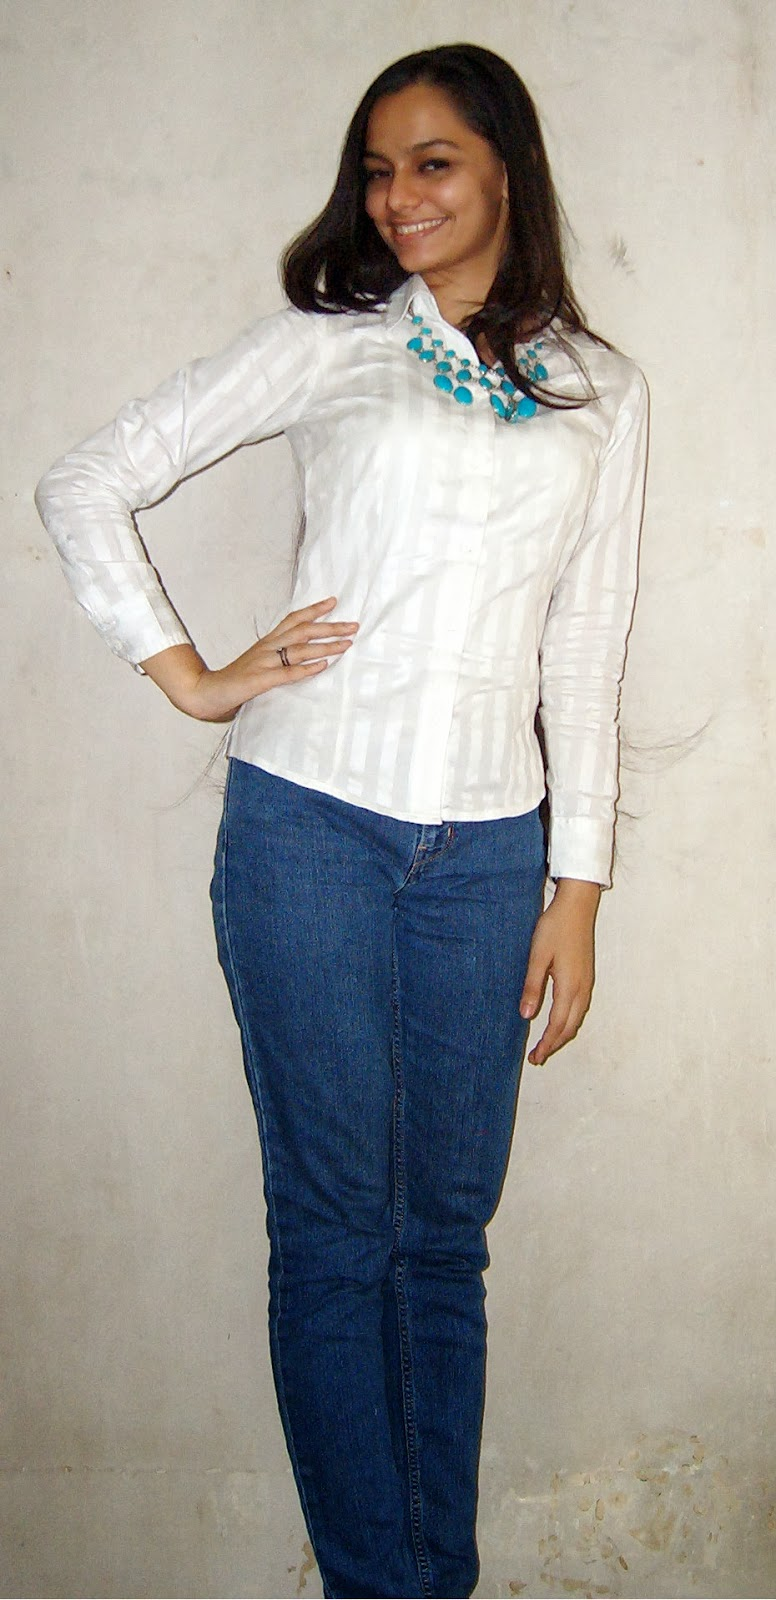 valentine's day outfit, crisp white shirt, blue jeans, statement necklace